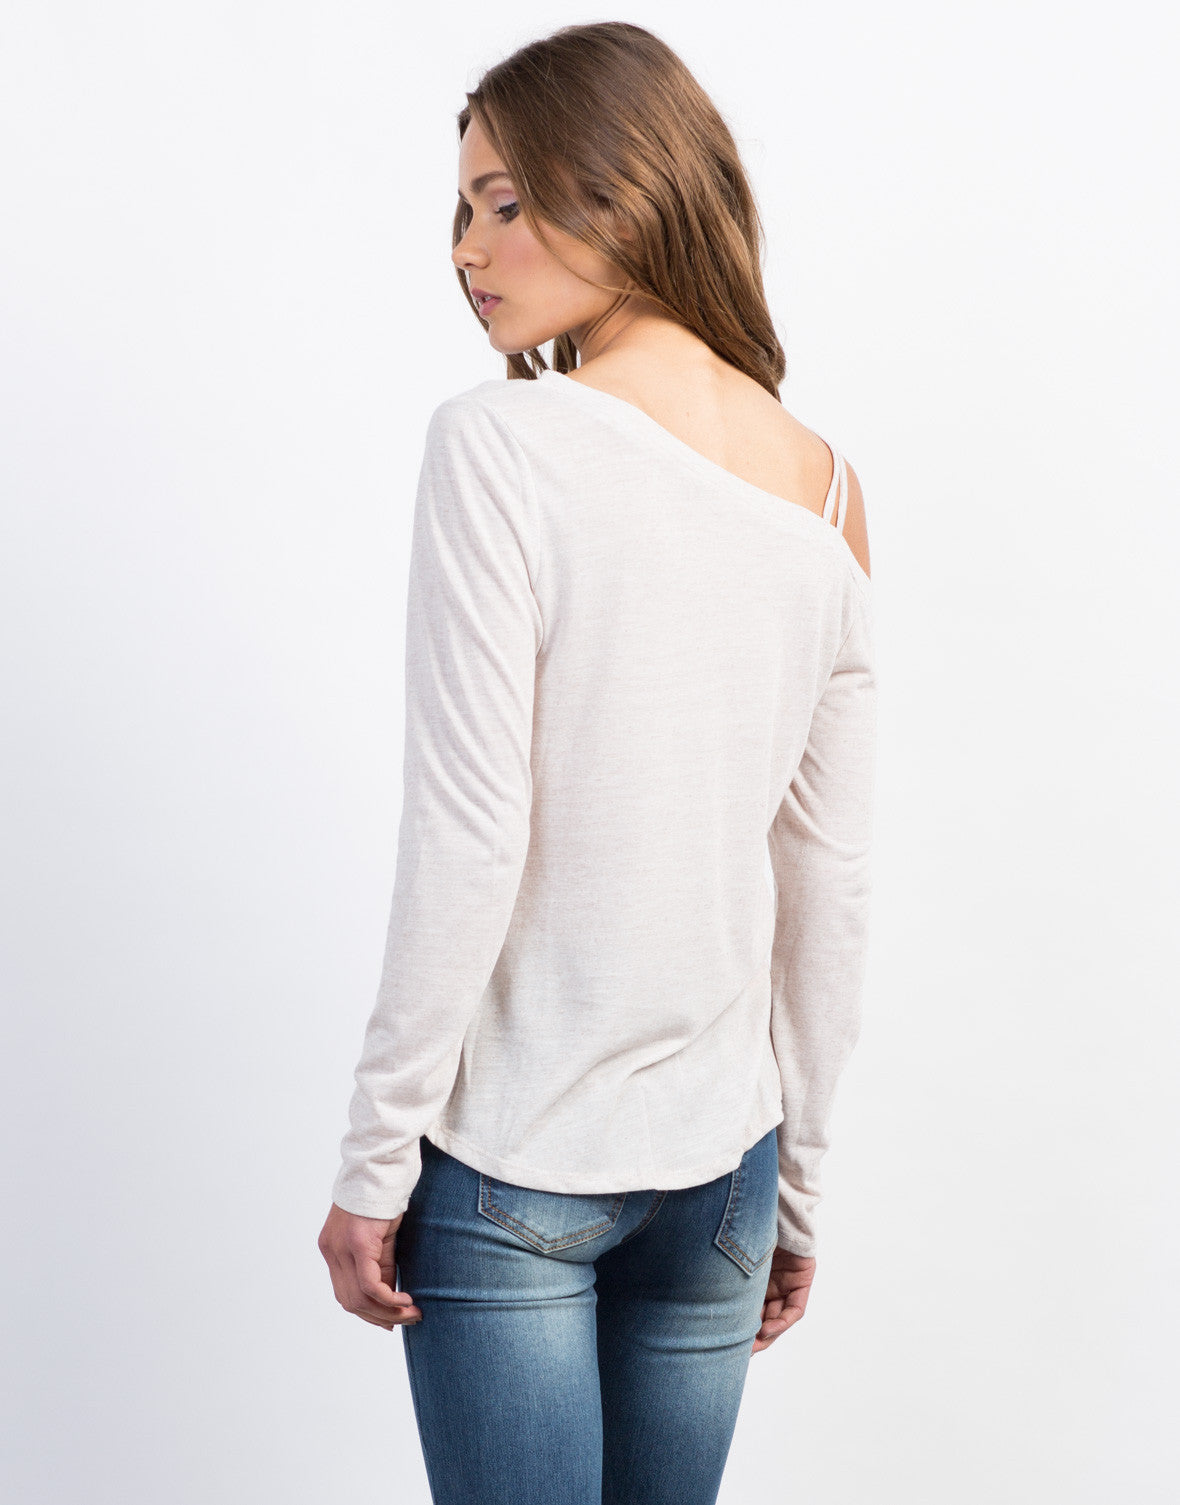 Back View of Long Sleeve Shoulder Strapped Top